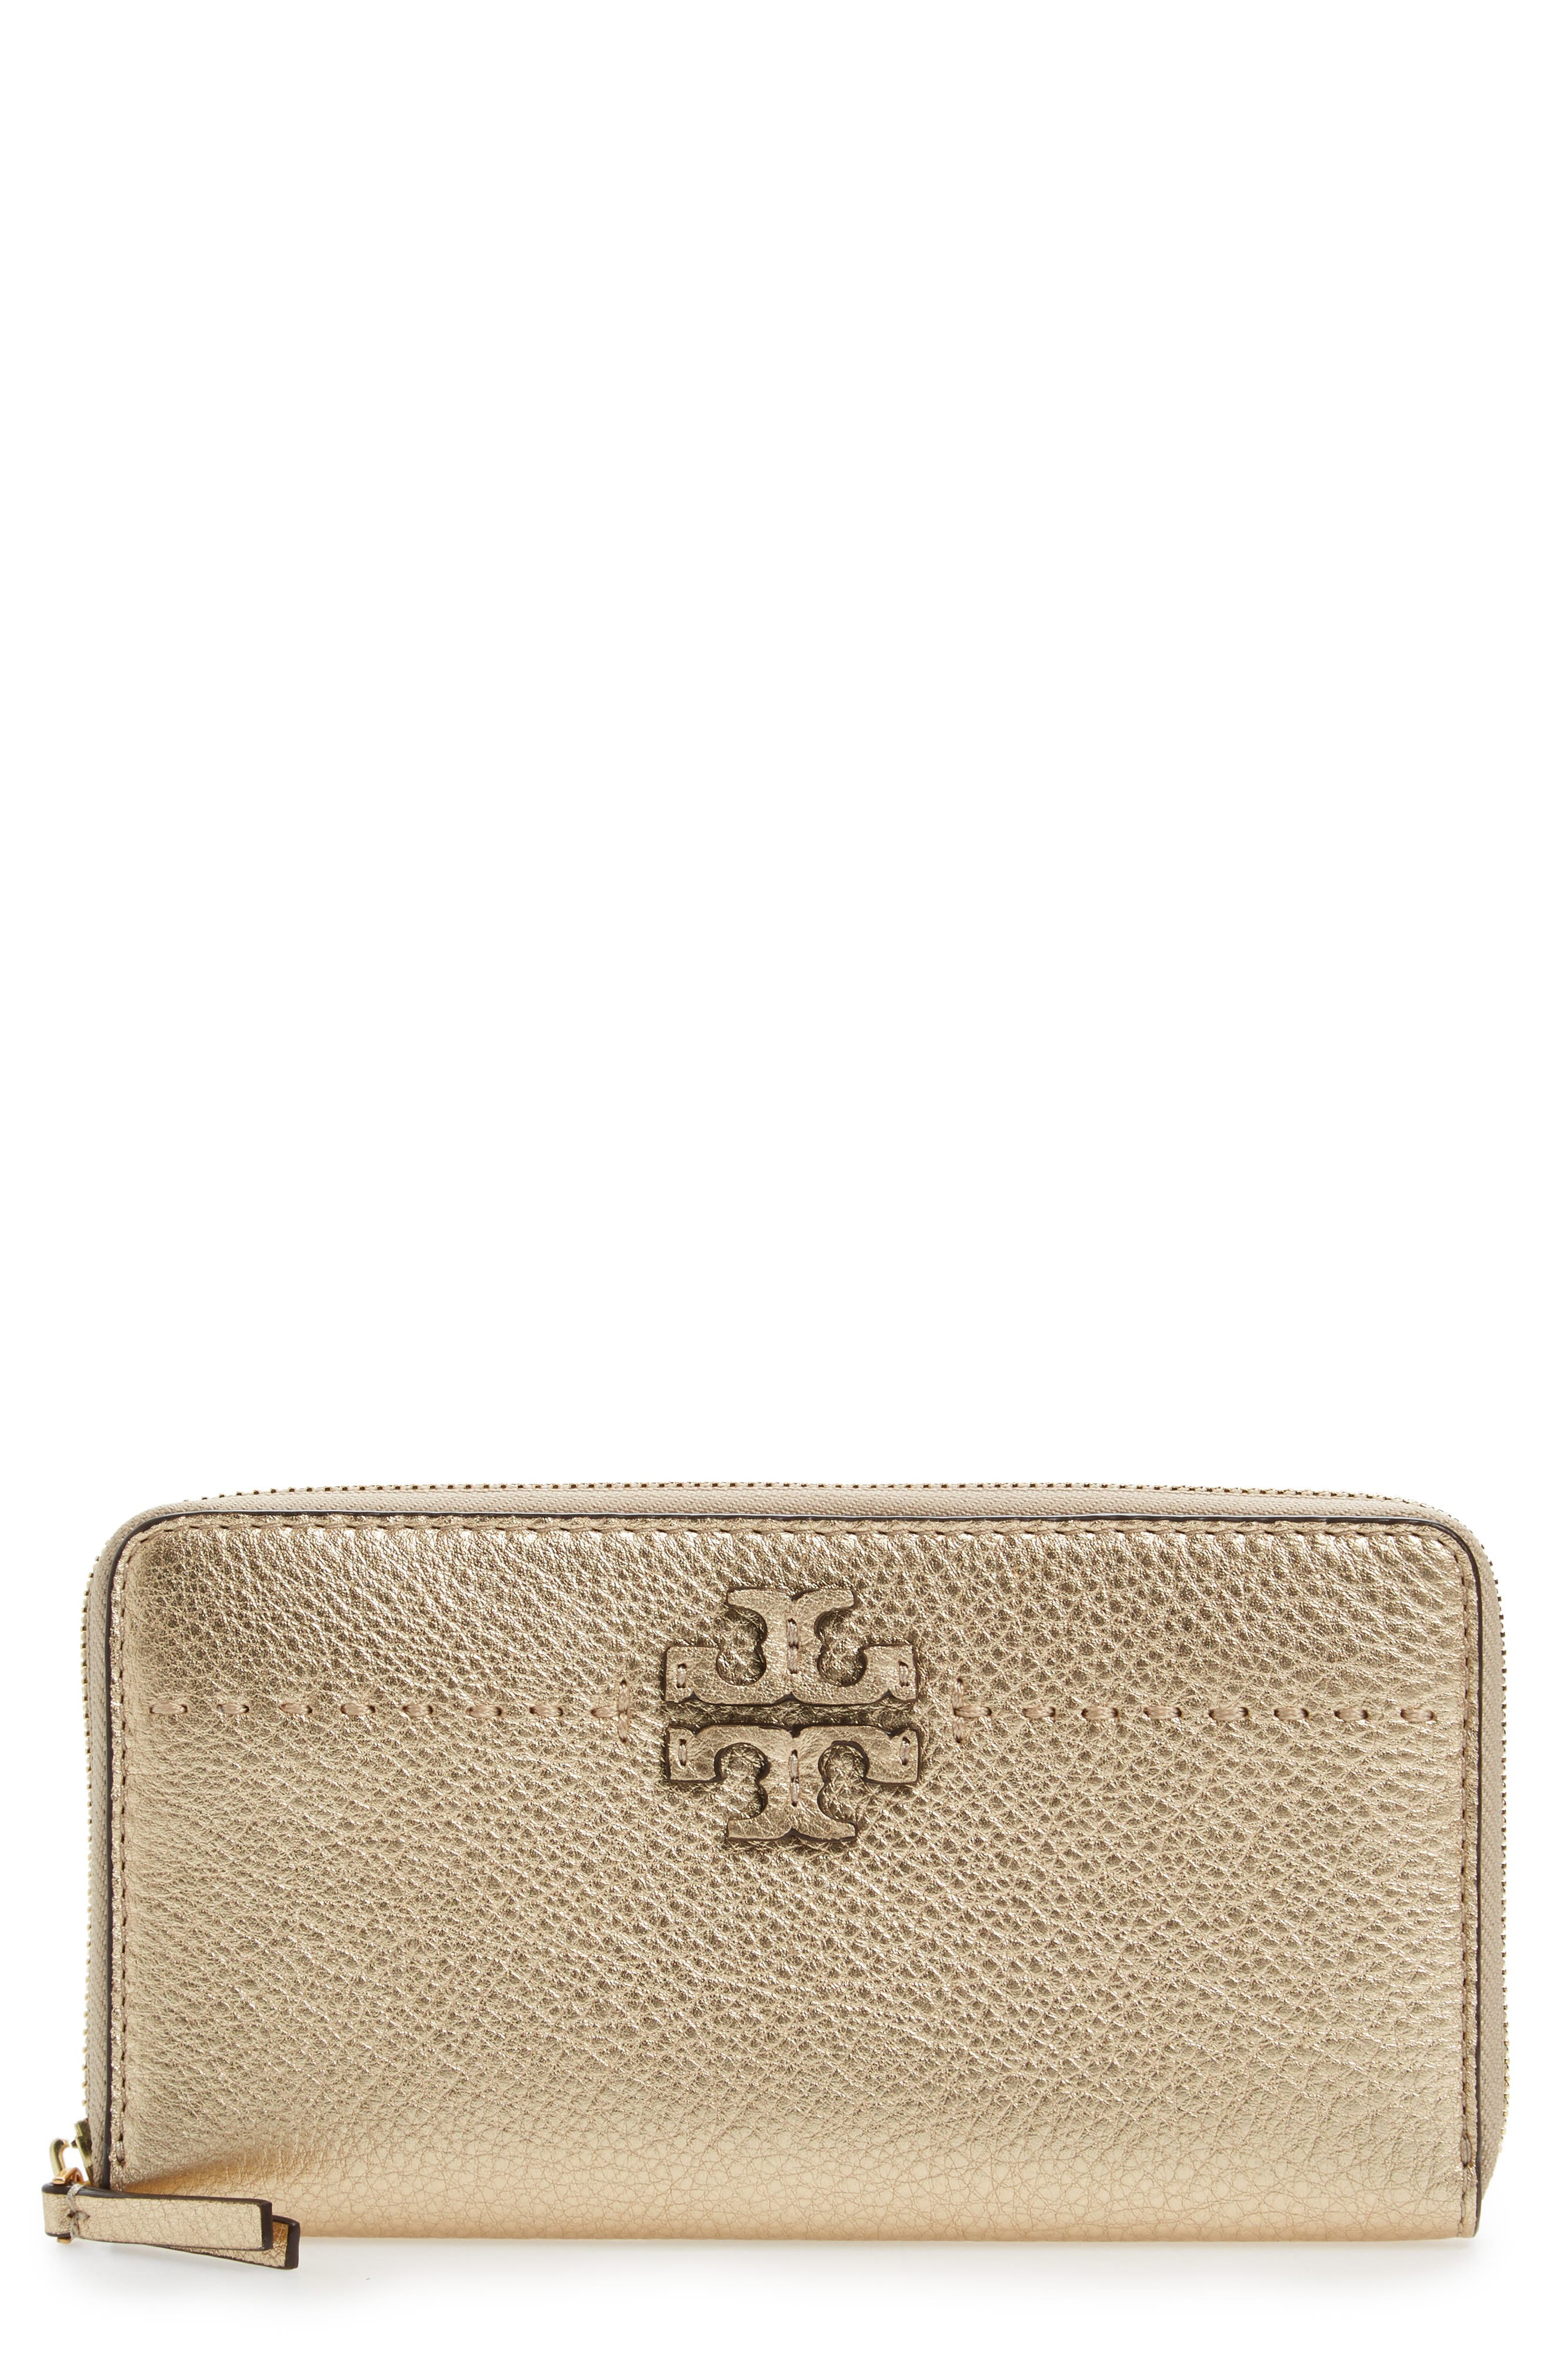 Tory Burch McGraw Leather Continental Wallet